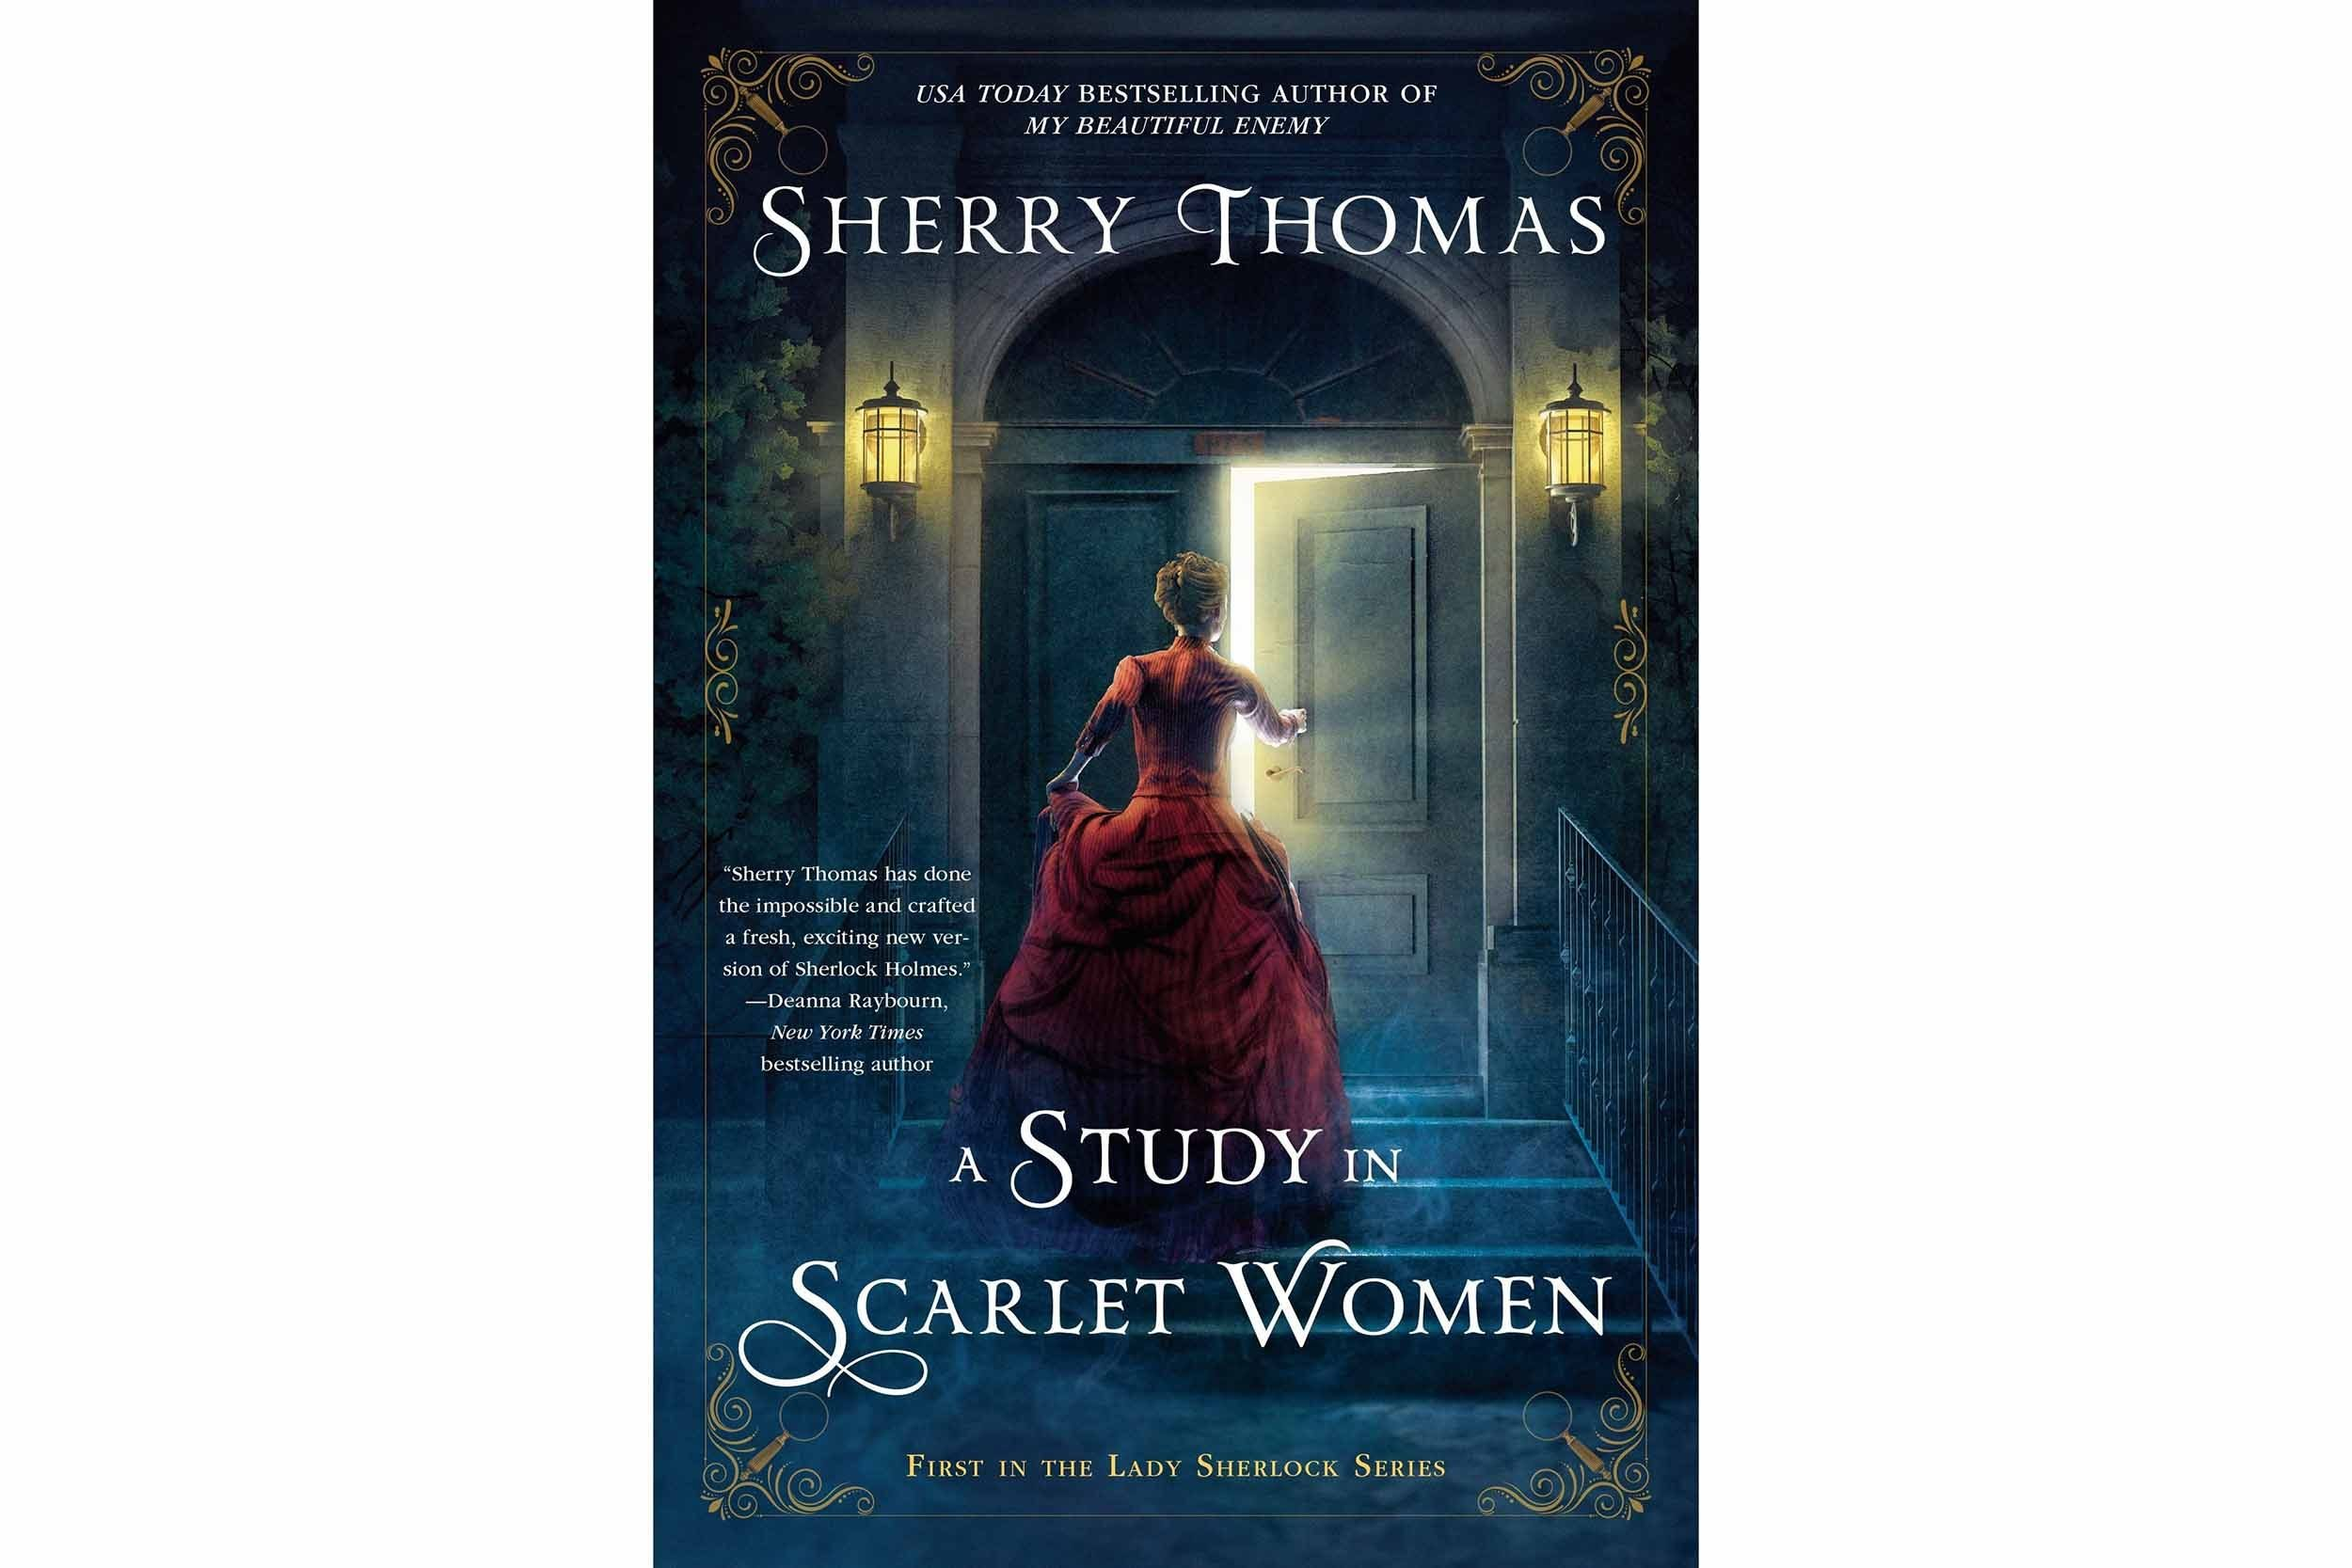 A Study in Scarlet Women by Sherry Thomas